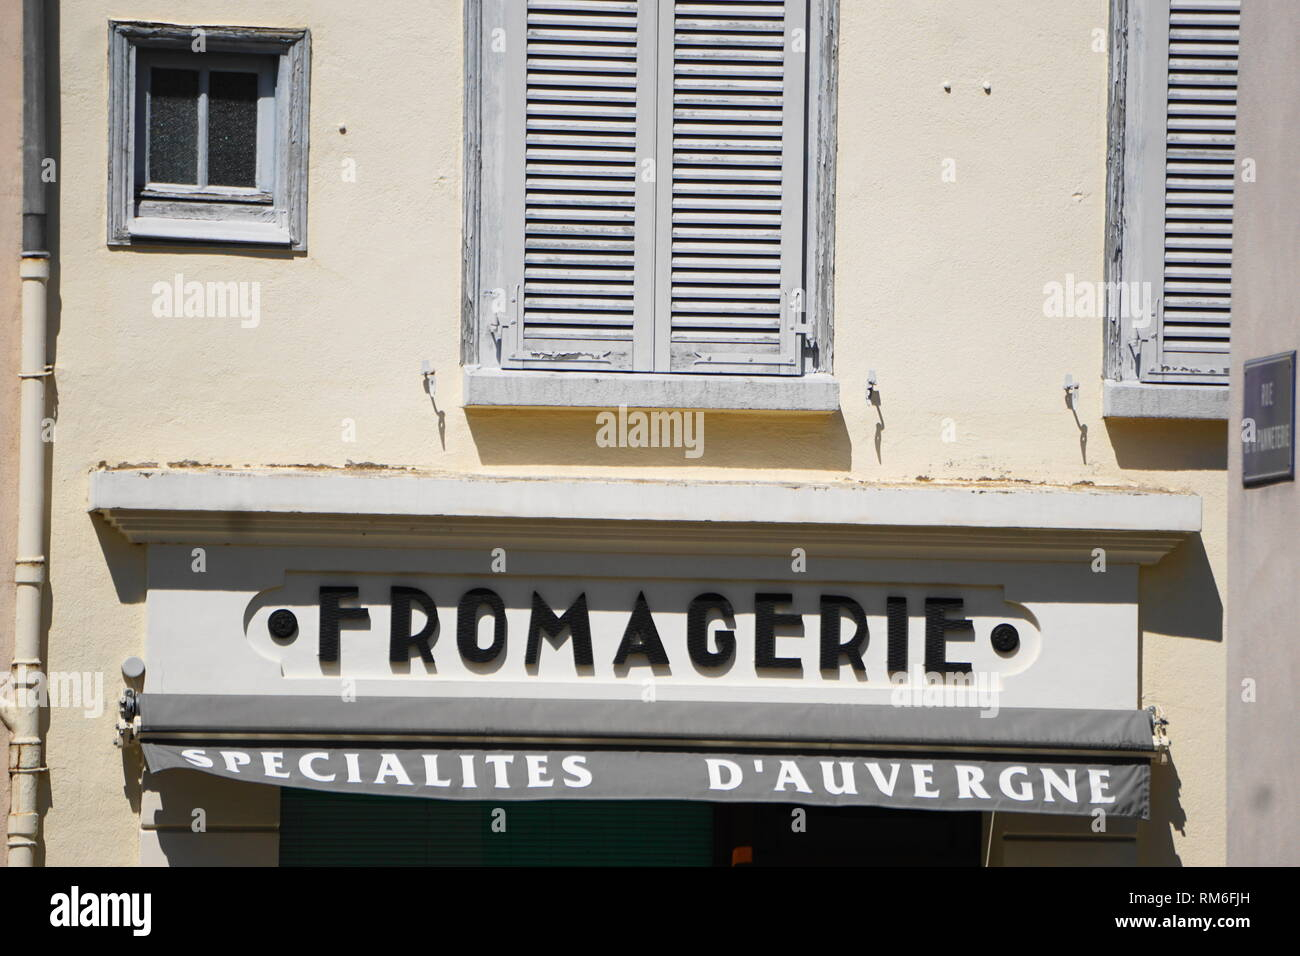 Fromagerie and Regional Specialties, Ambert, Auvergne, France - Stock Image